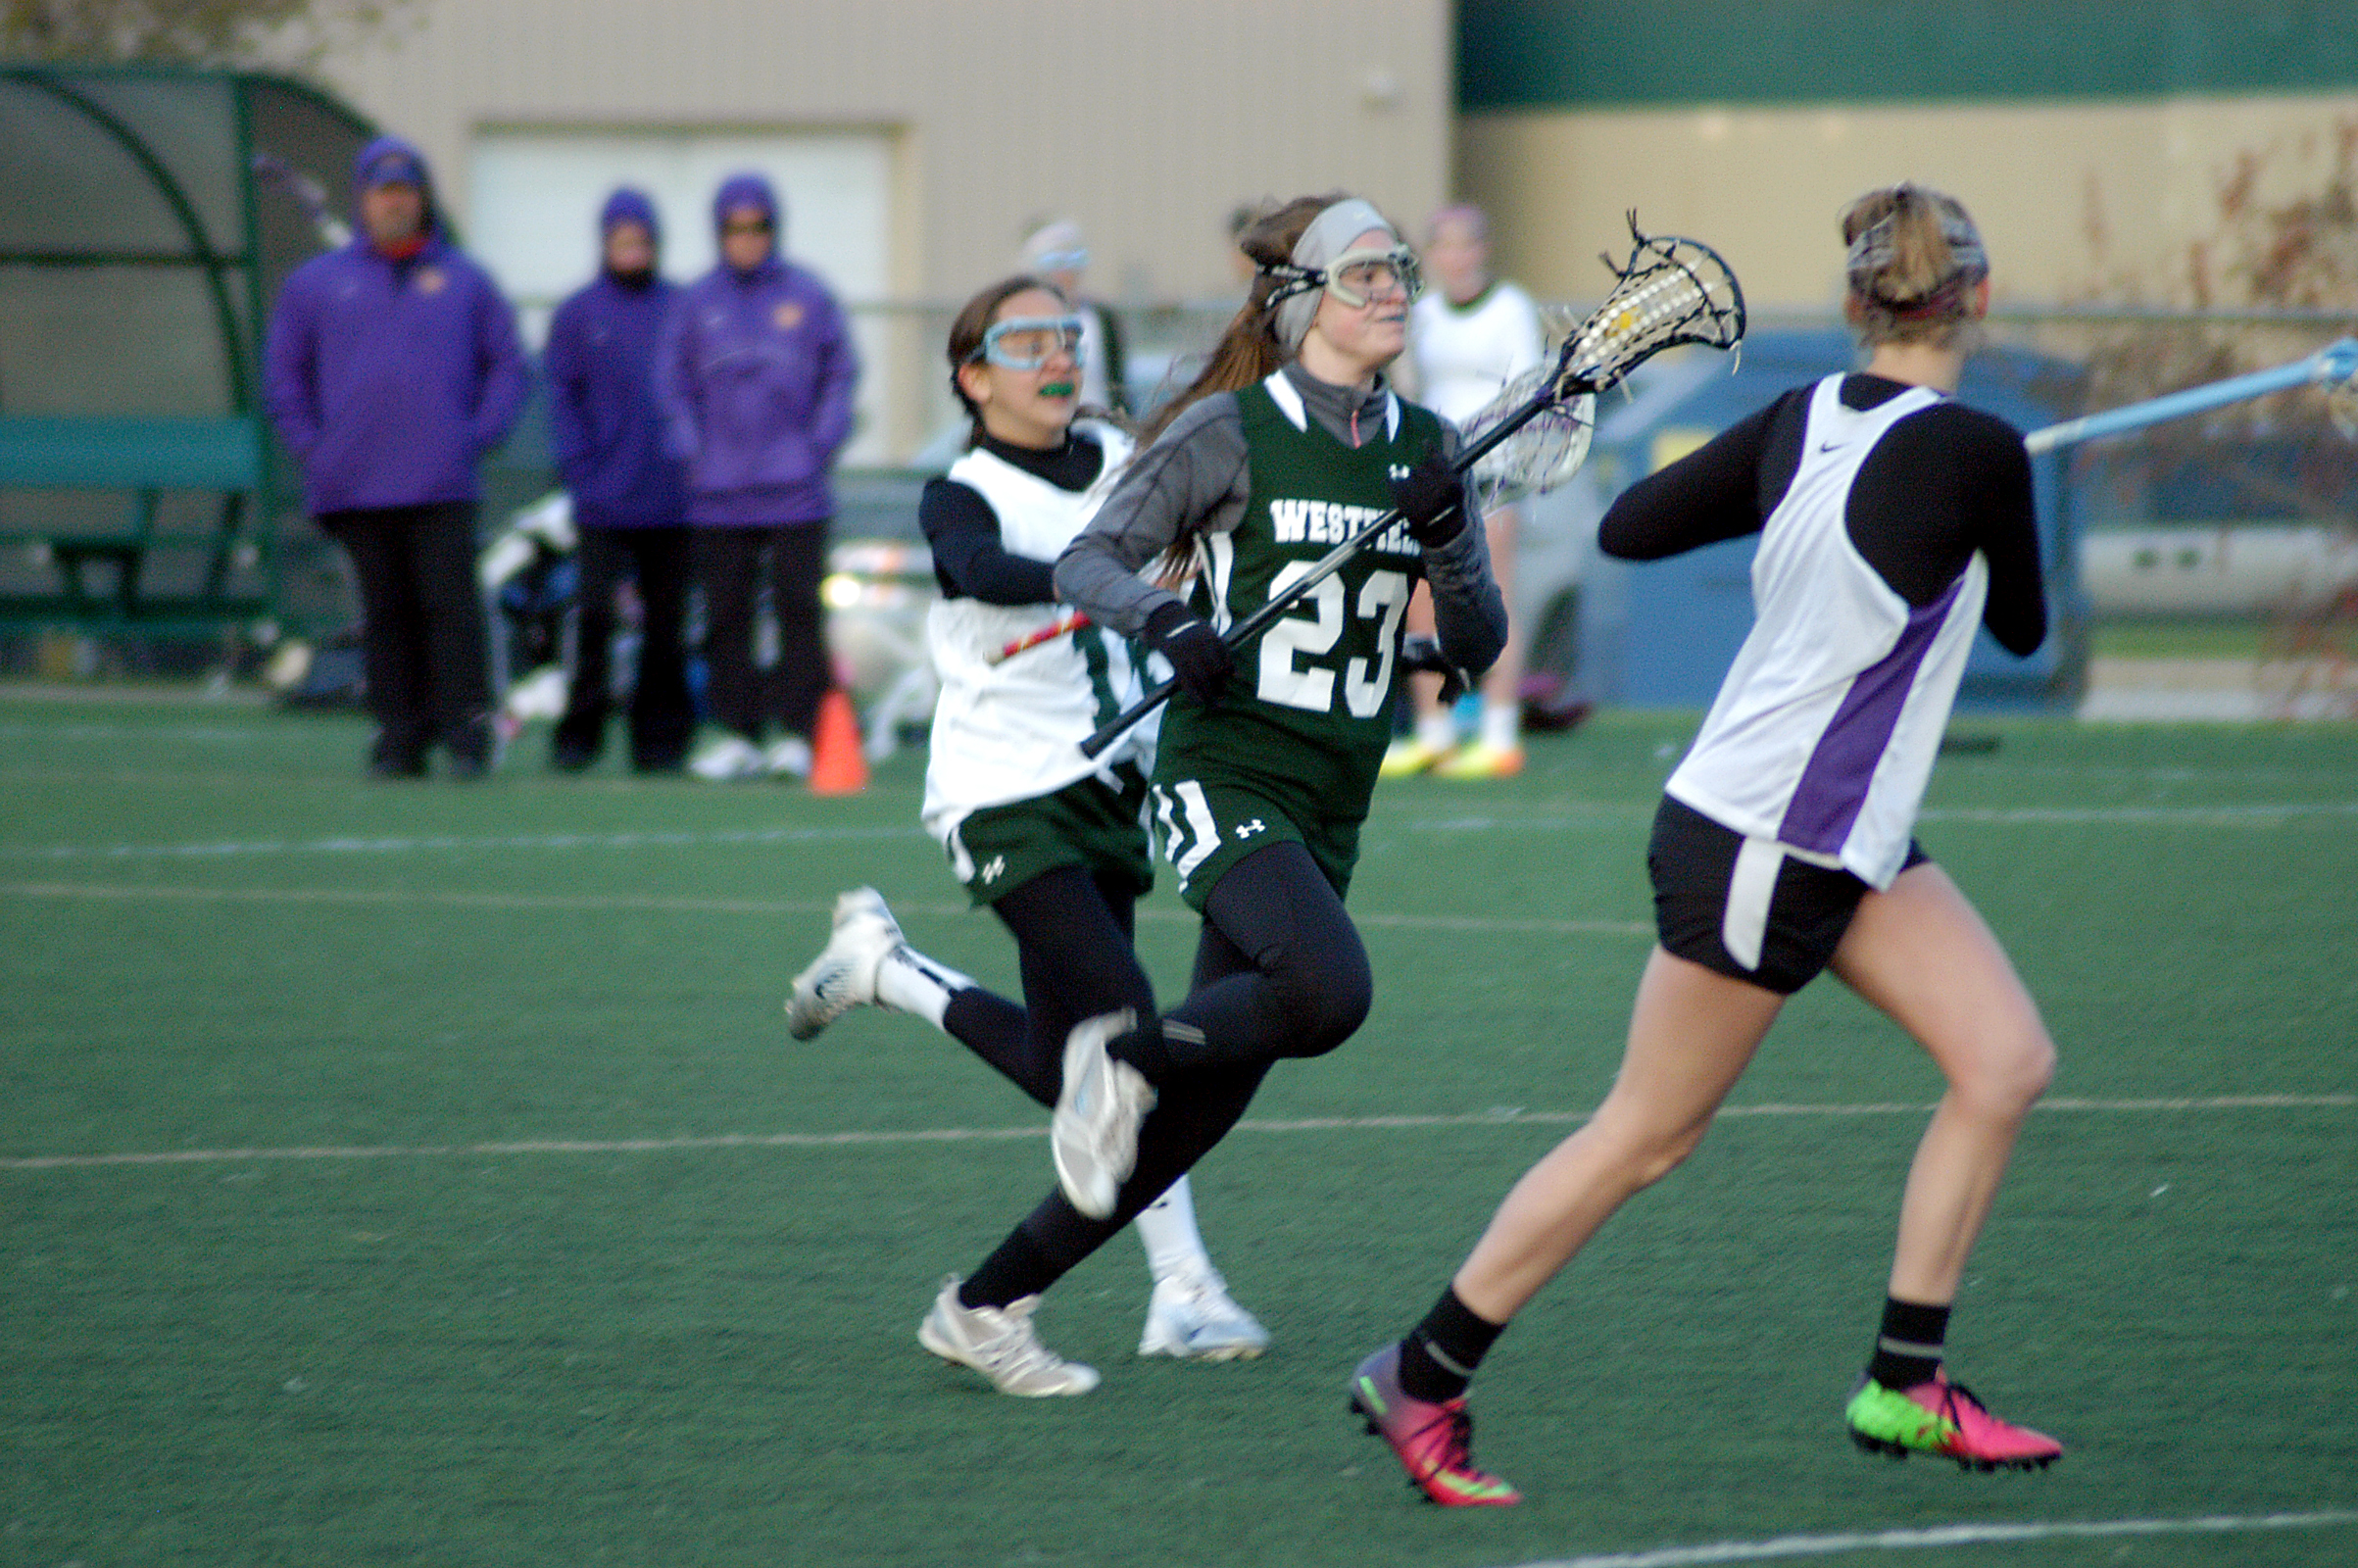 Westfield's Annie Foster runs the ball up the field as the Shamrocks face Guerin Catholic. (Submitted photo)